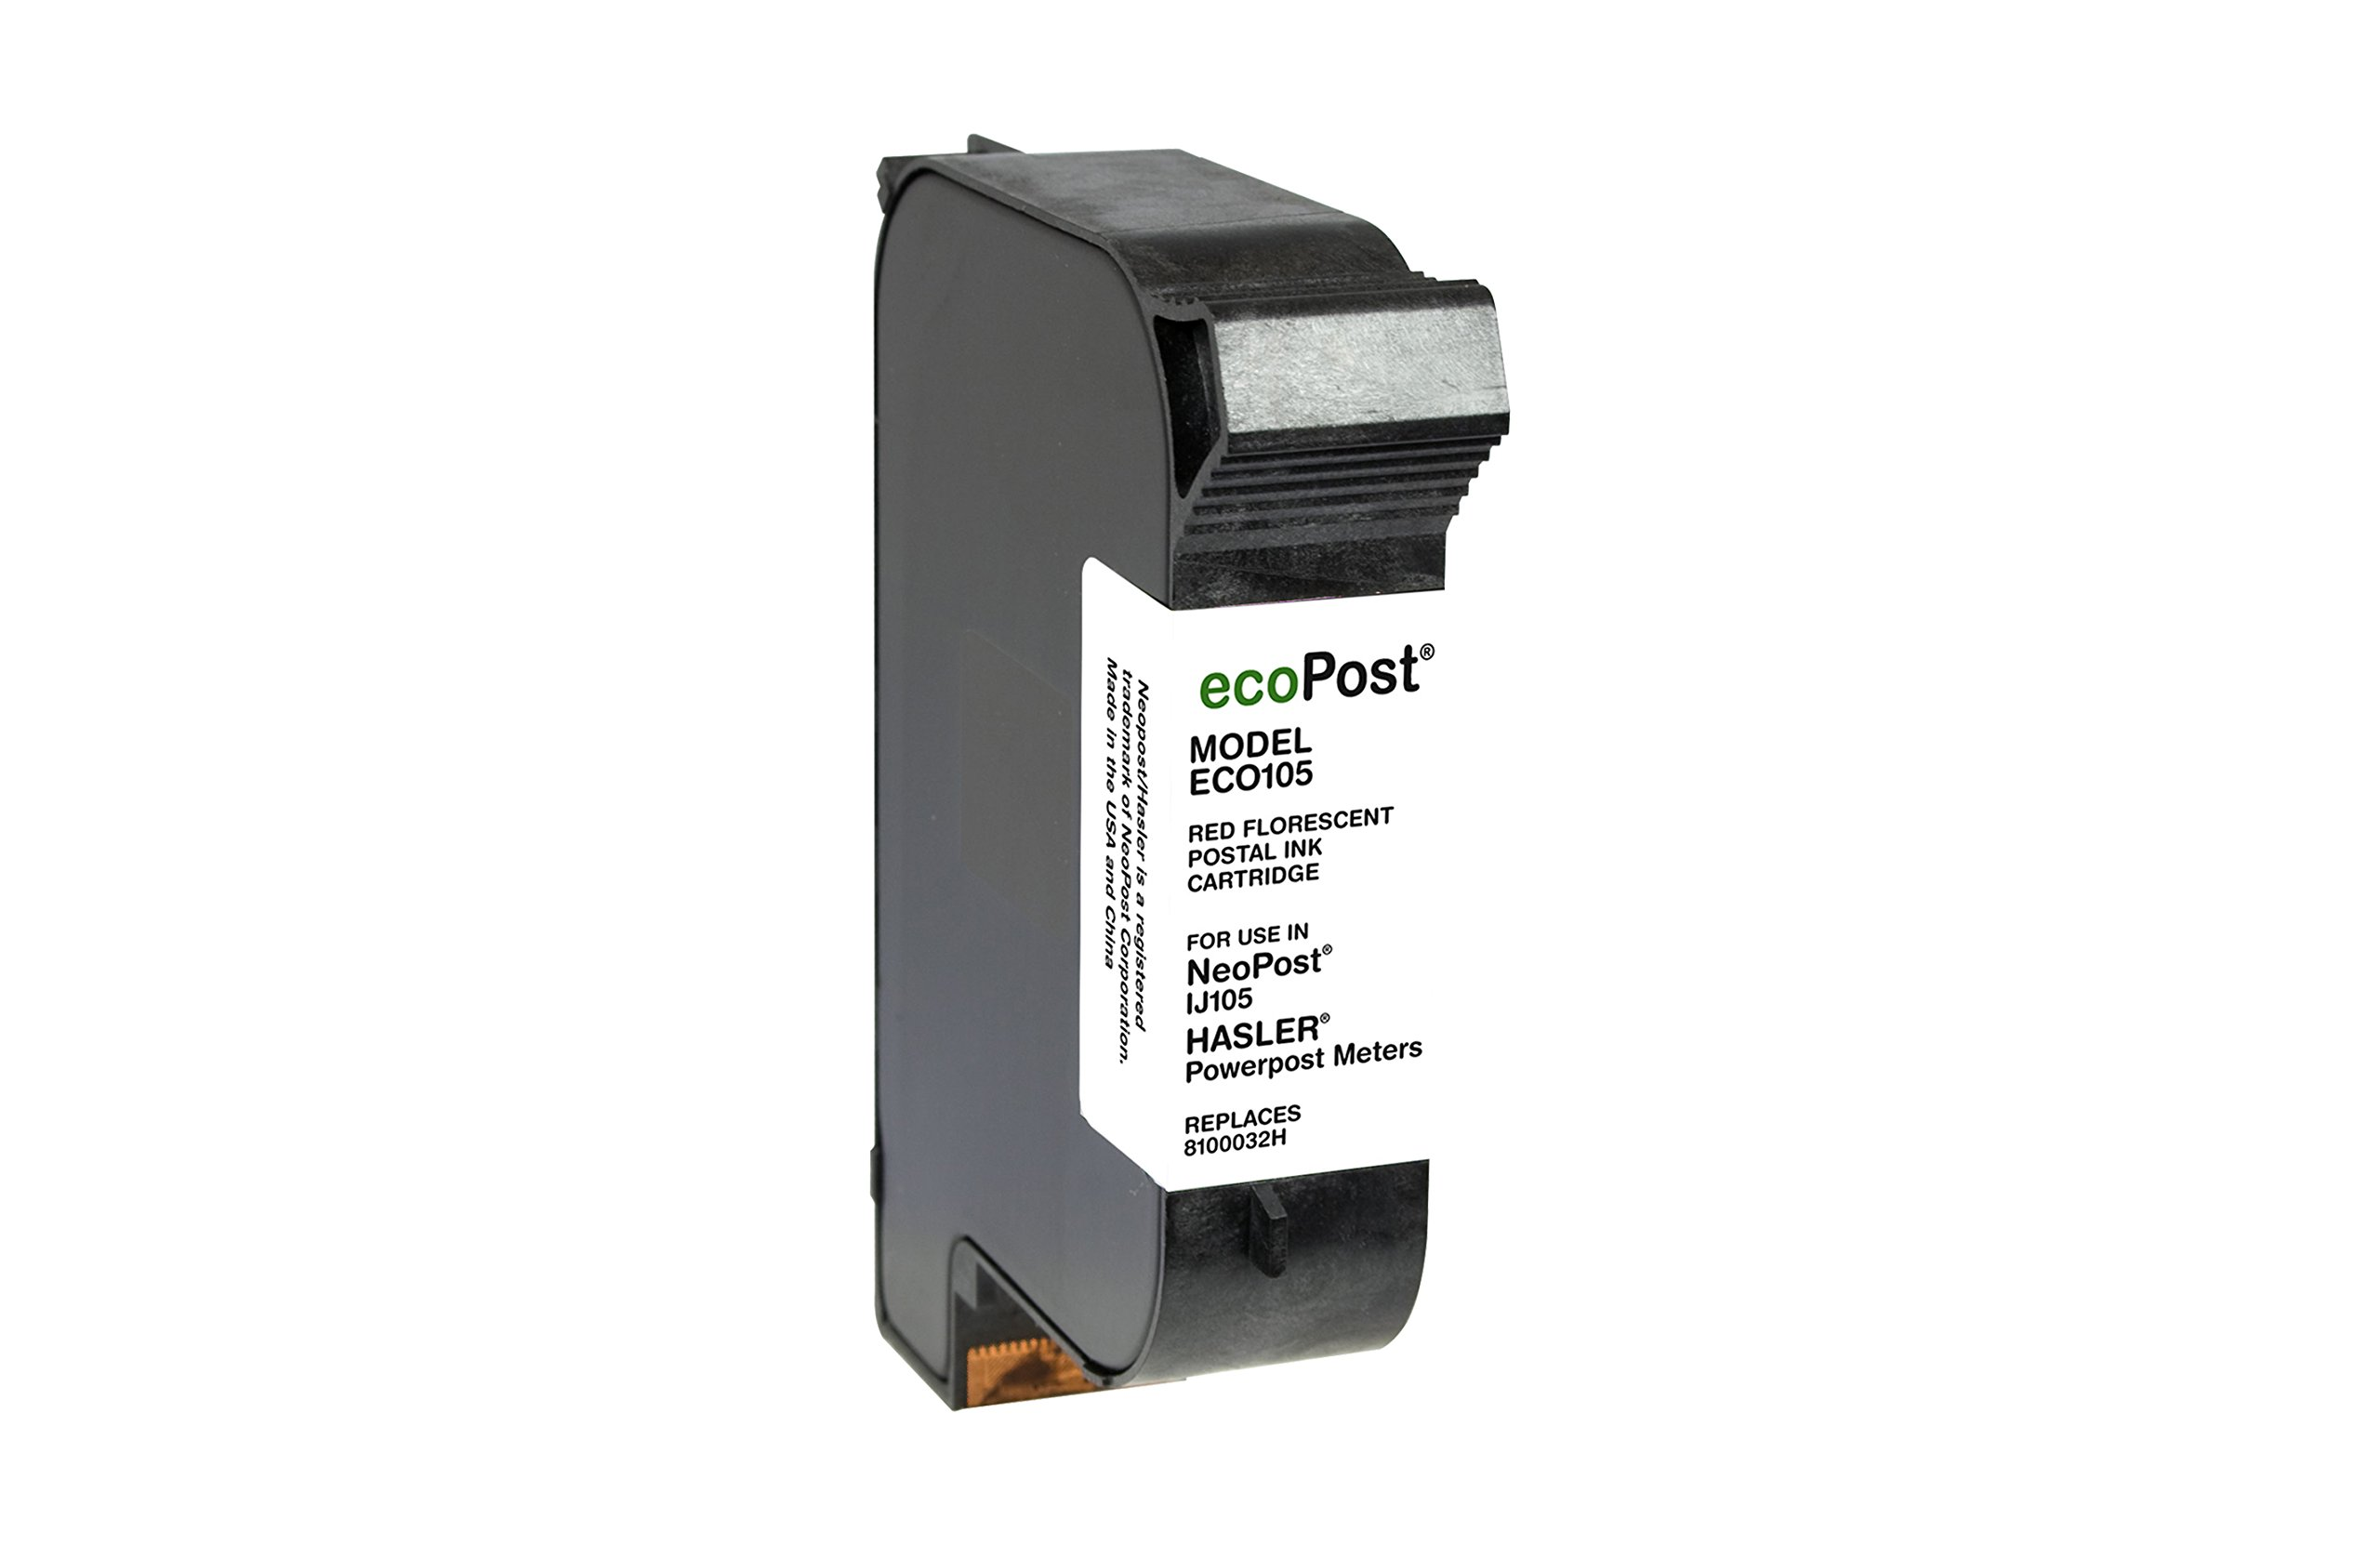 Ecopost ECO105 Eco Post Power Postage Meter Inkjet Cartridge Compatible Neopost IJ105 8100032H (PPINKR & C6120A) 2 Pack Fluorescent Red Ink